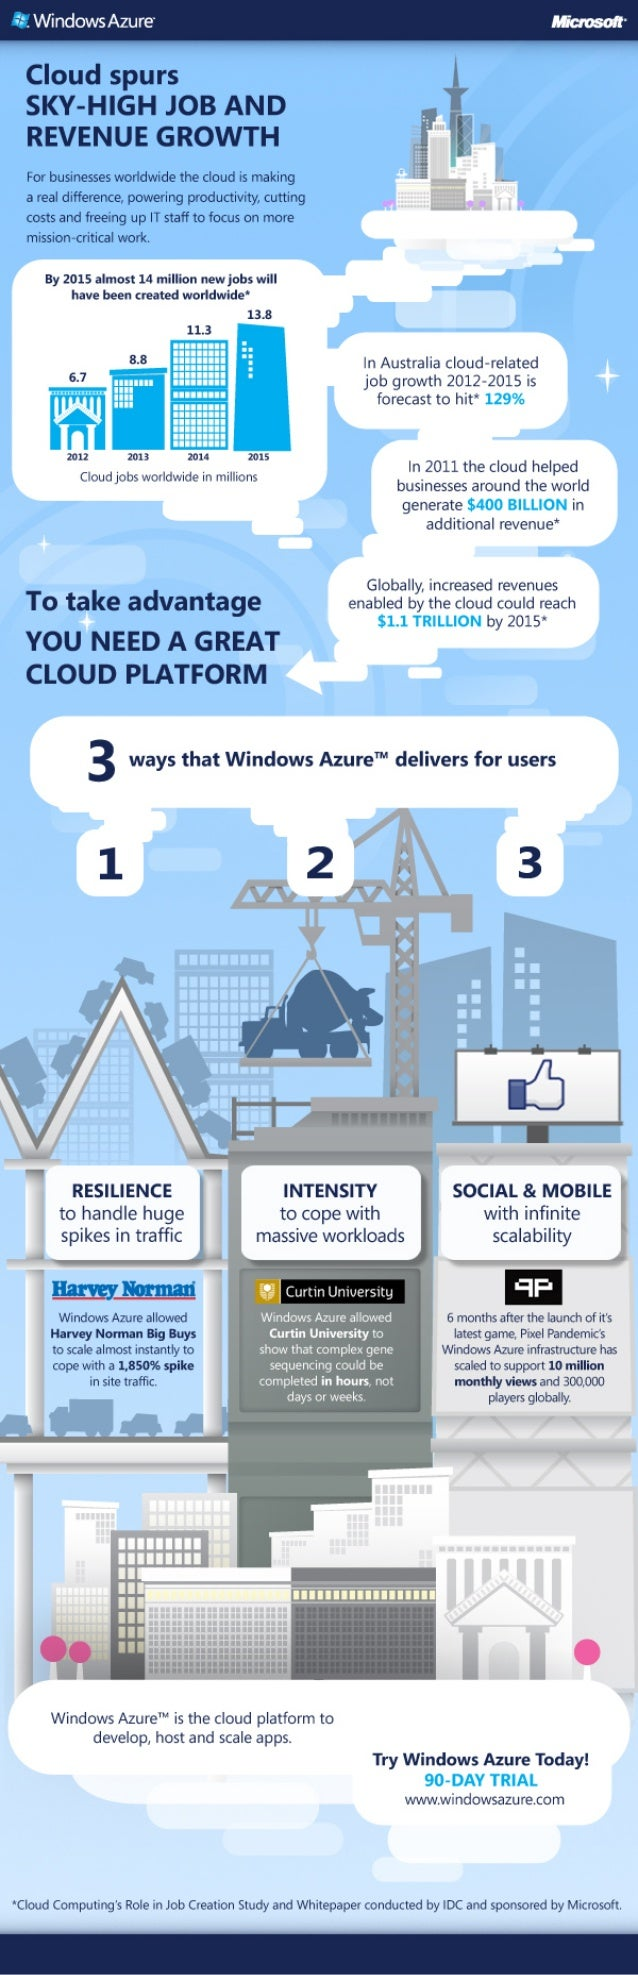 Infographic | Cloud Spurs Sky-High Job and Revenue Growth